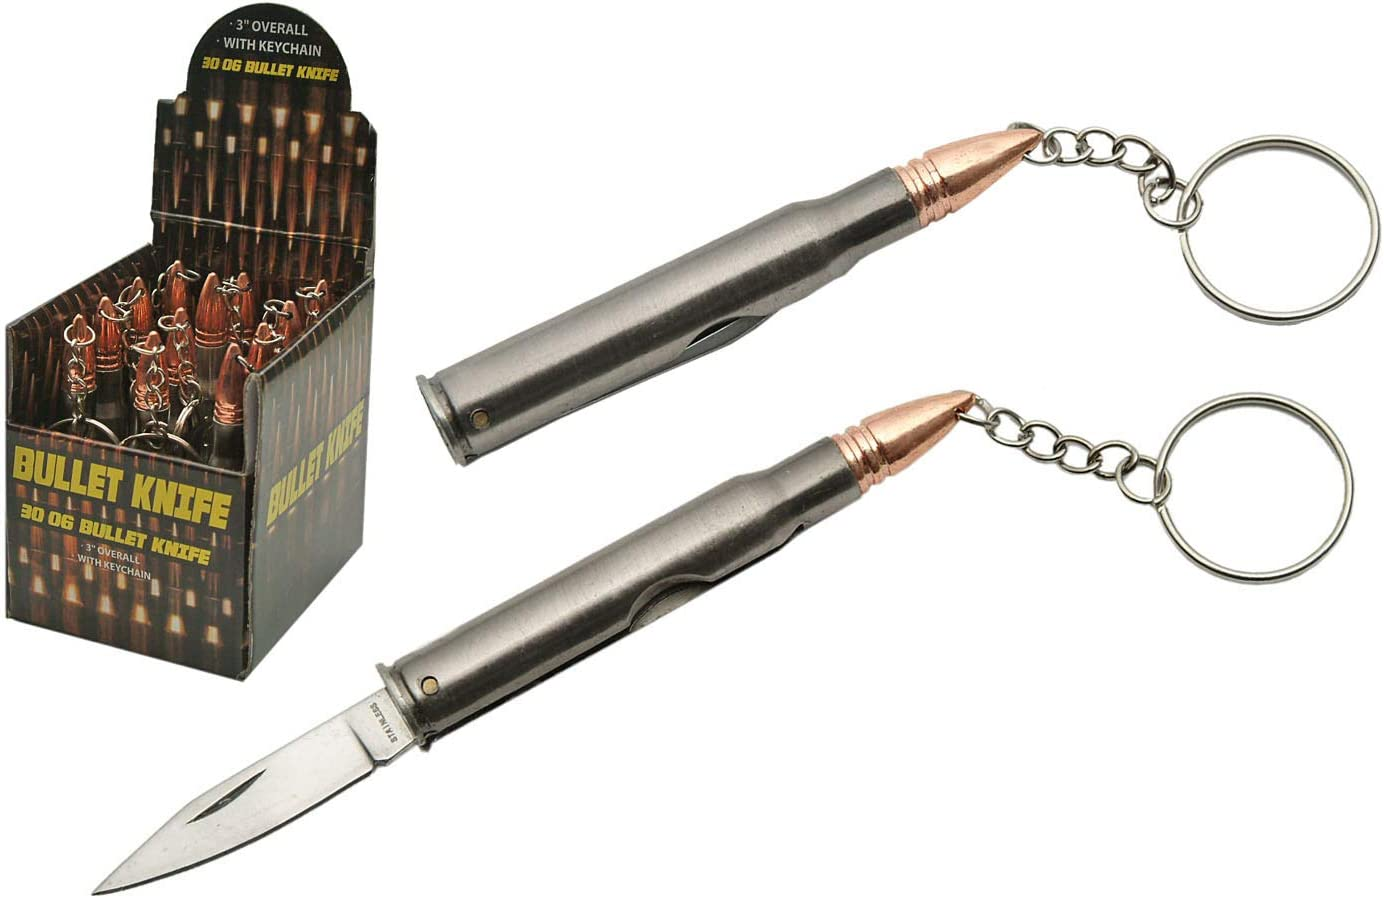 SZCO Directly managed store Supplies store 211345 Display 30-06 Bullet 12-Pie Knife Keychain